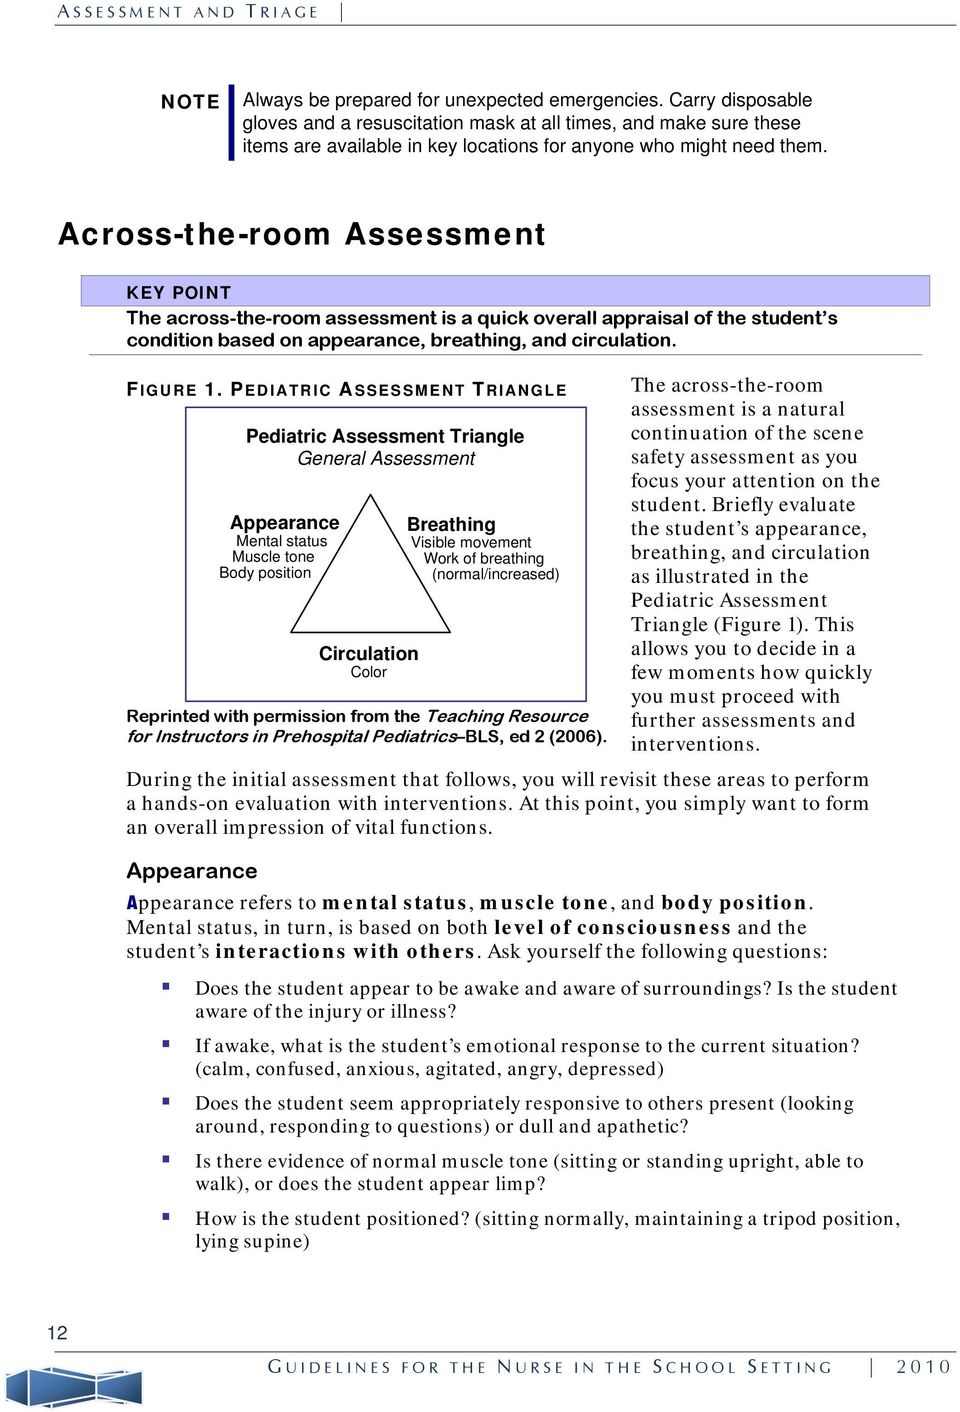 Across-the-room Assessment KEY POINT The across-the-room assessment is a quick overall appraisal of the student s condition based on appearance, breathing, and circulation. F IGURE 1.